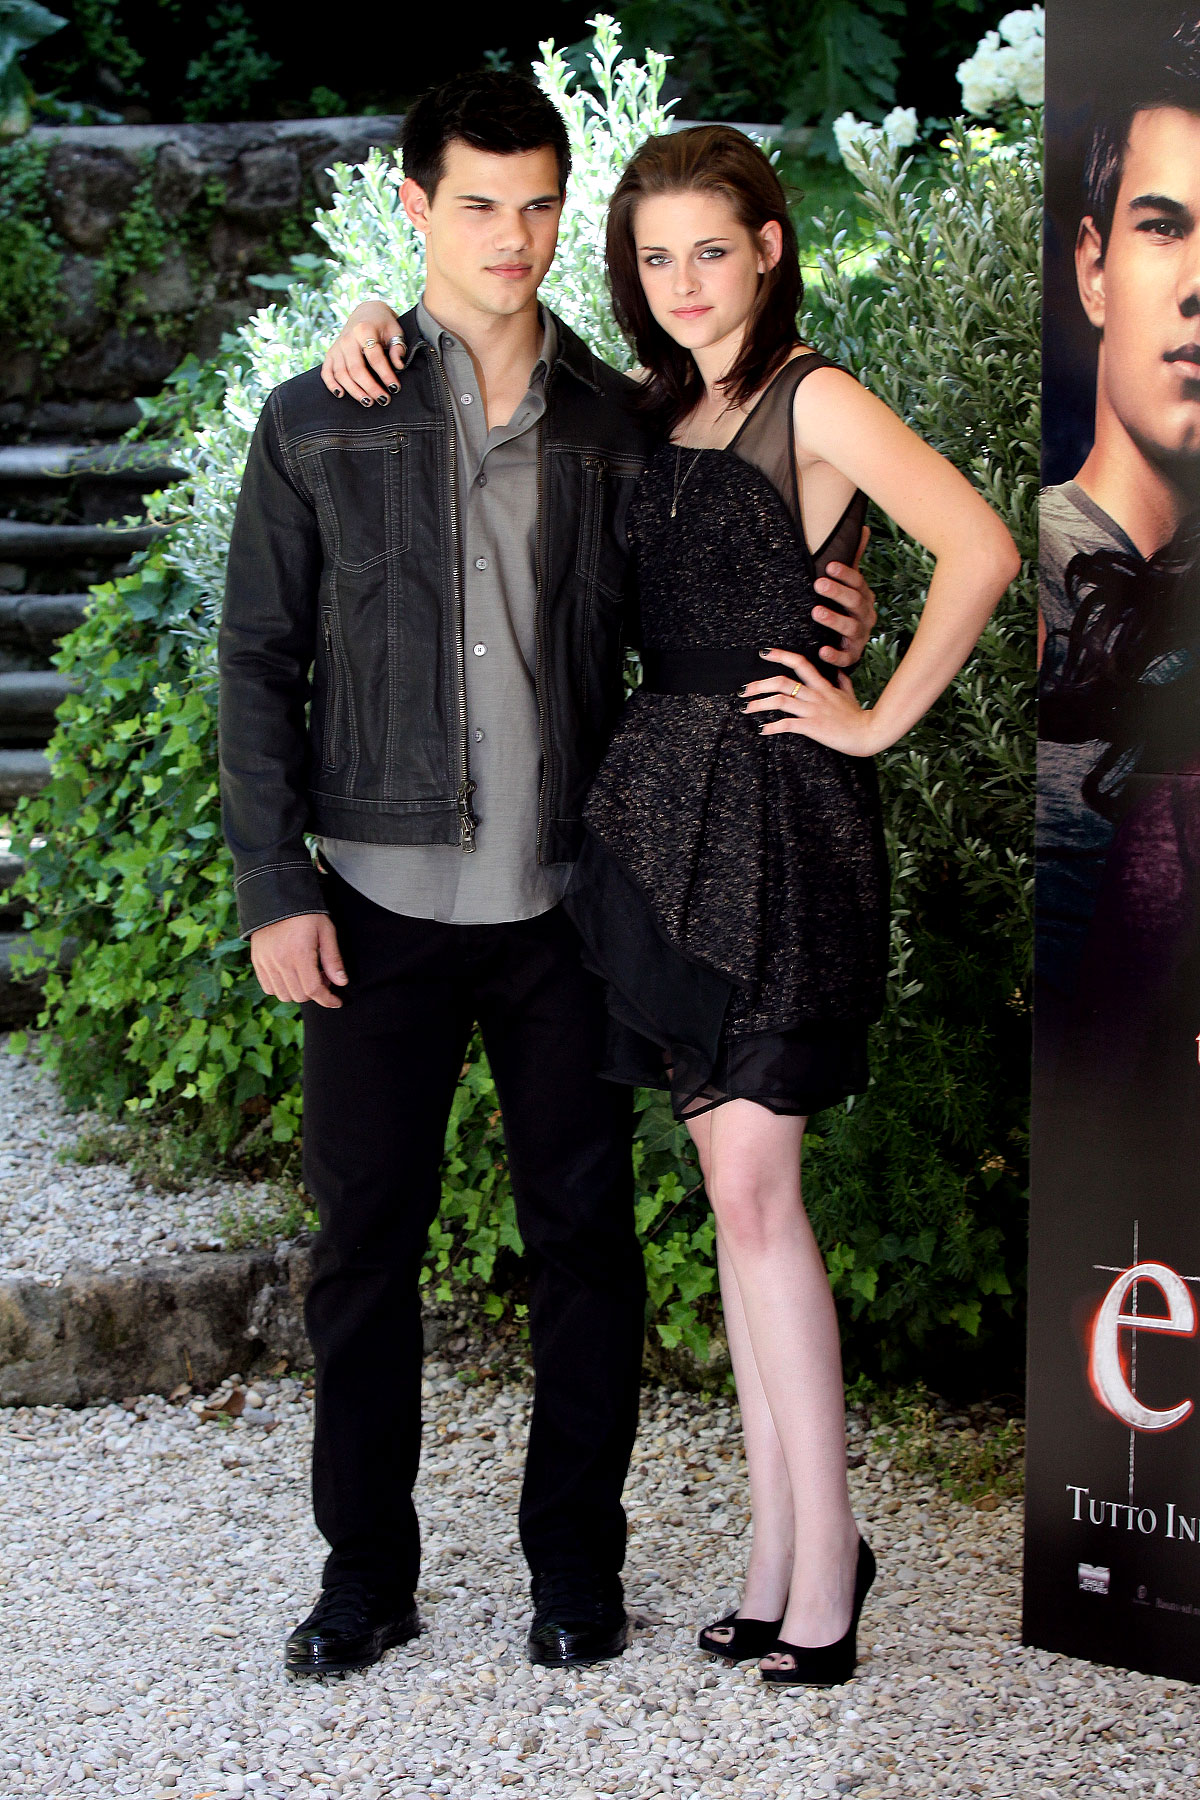 Kristen Stewart & Taylor Lautner Look Spiffy For 'Eclipse' (PHOTOS)